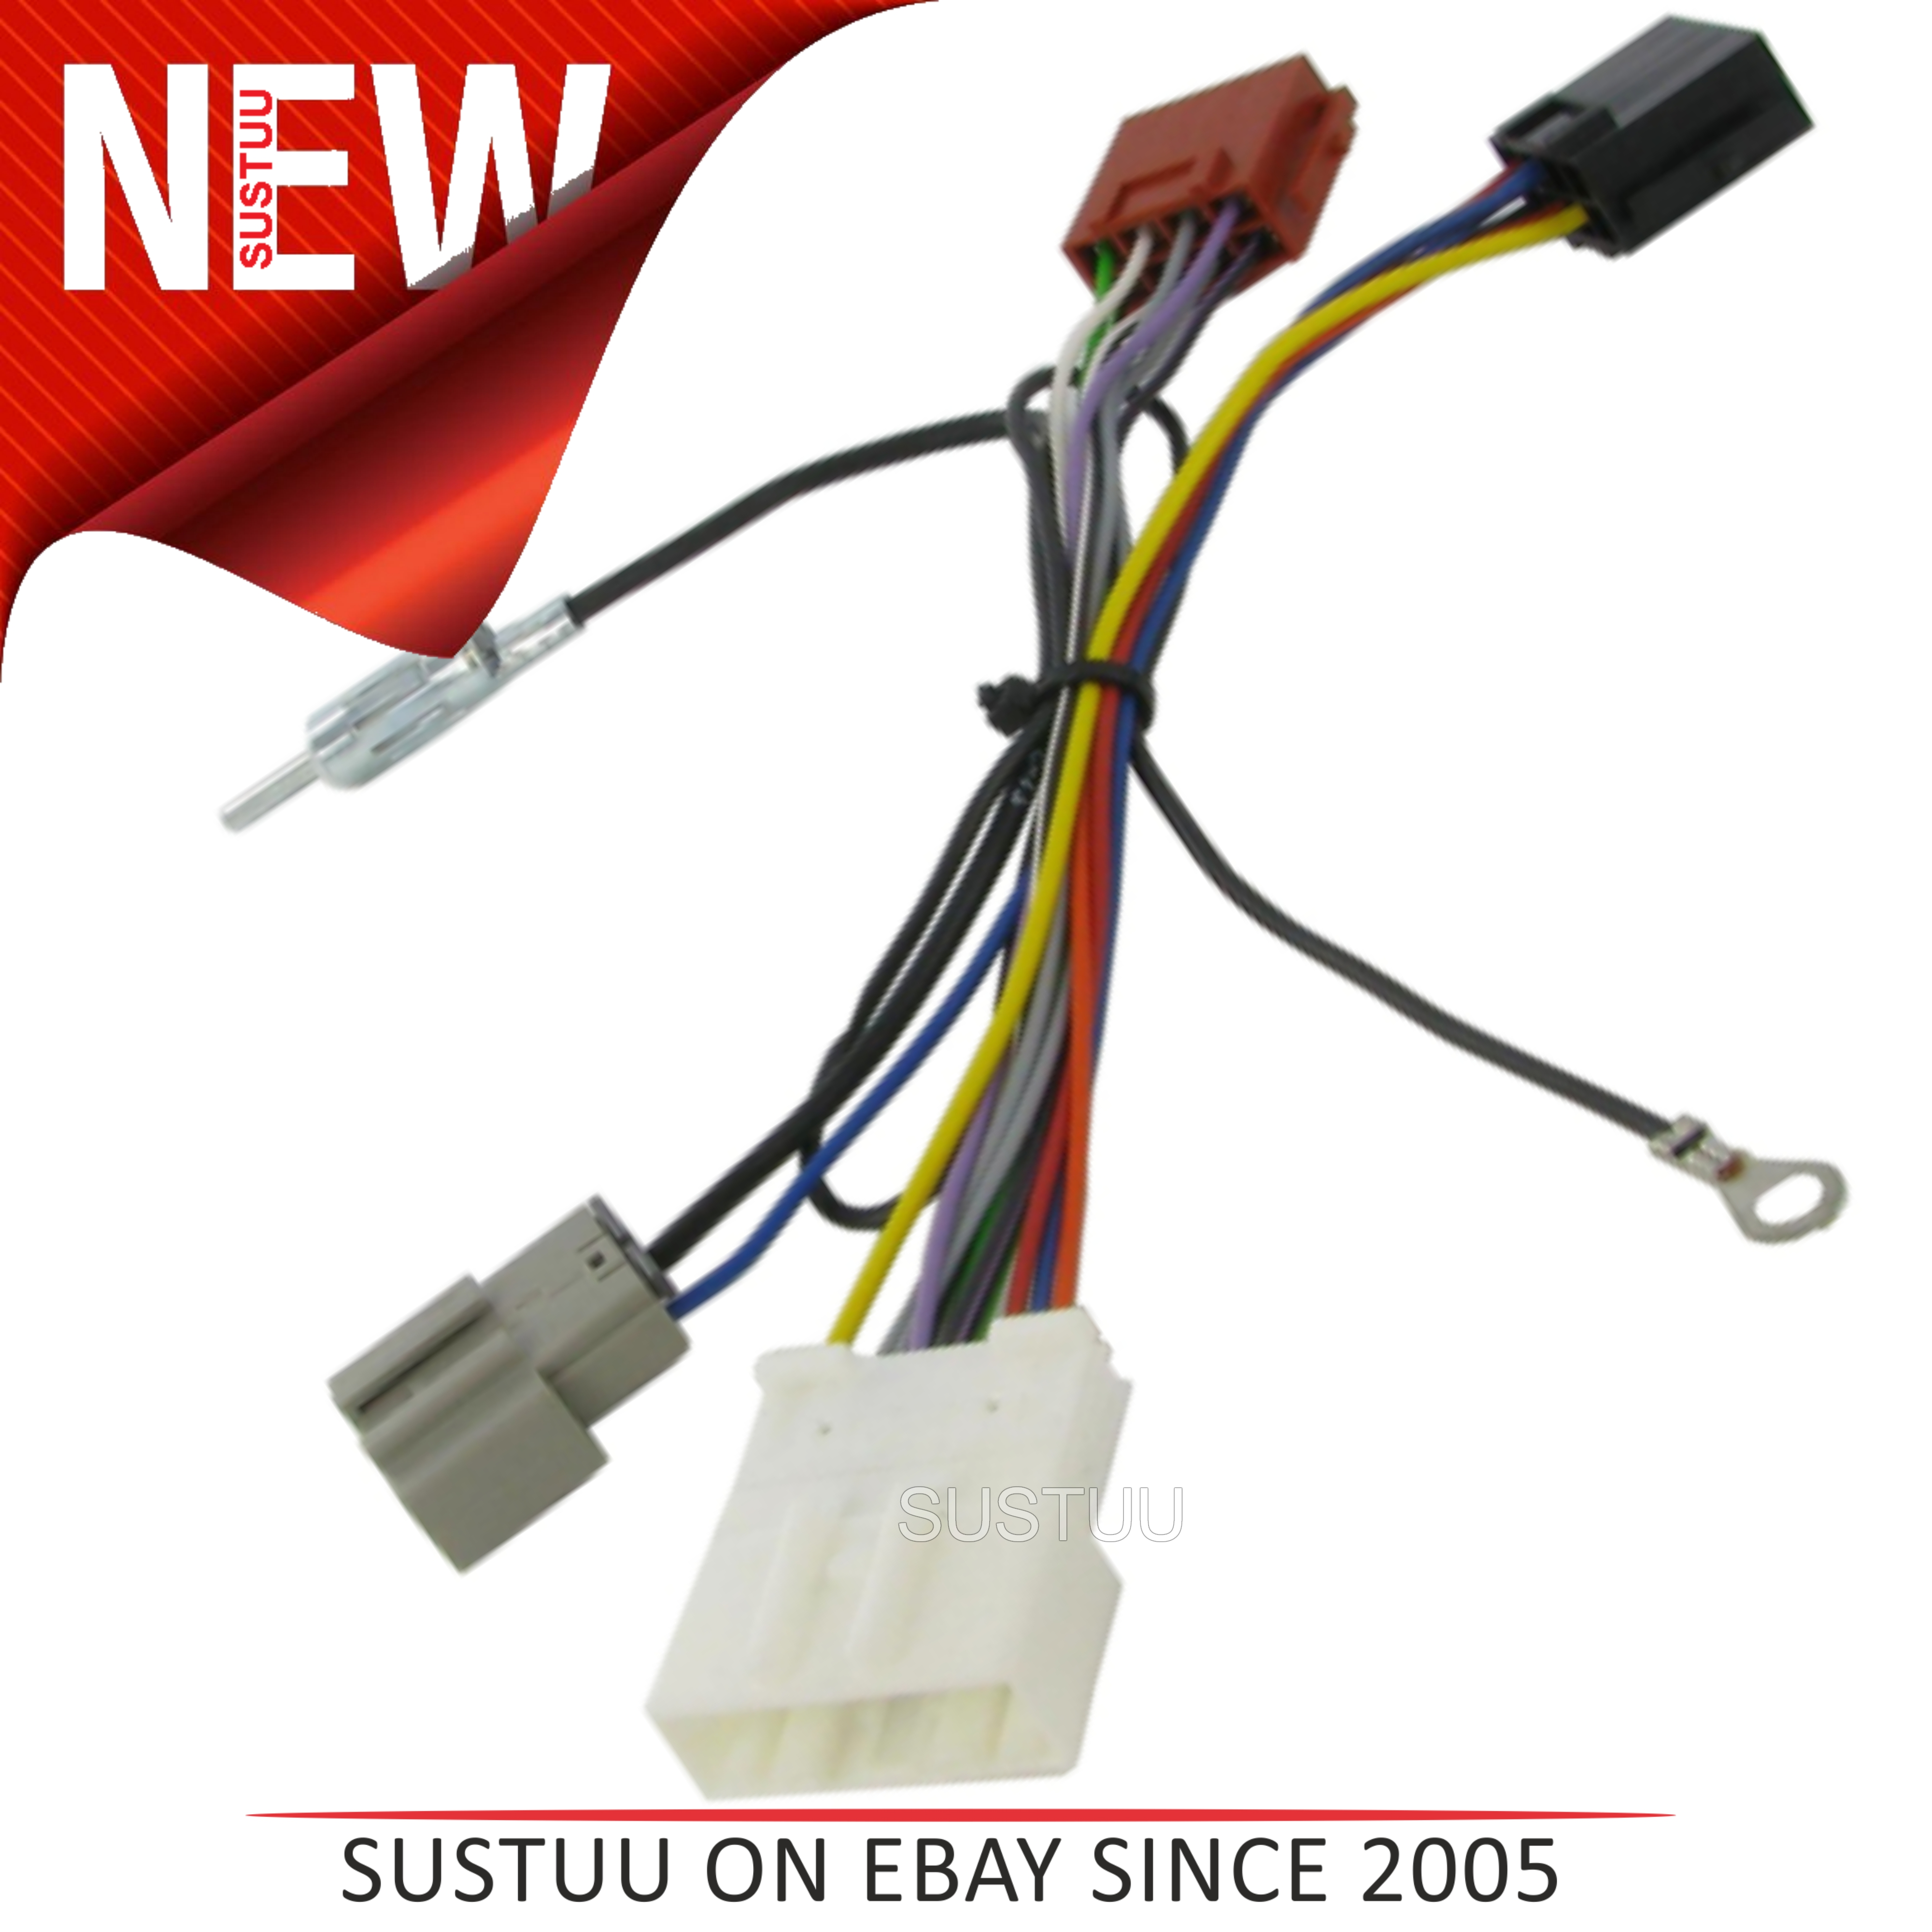 C2 20NS06 Car Stereo ISO Wiring Fakra Harness Adaptor NISSAN ... on